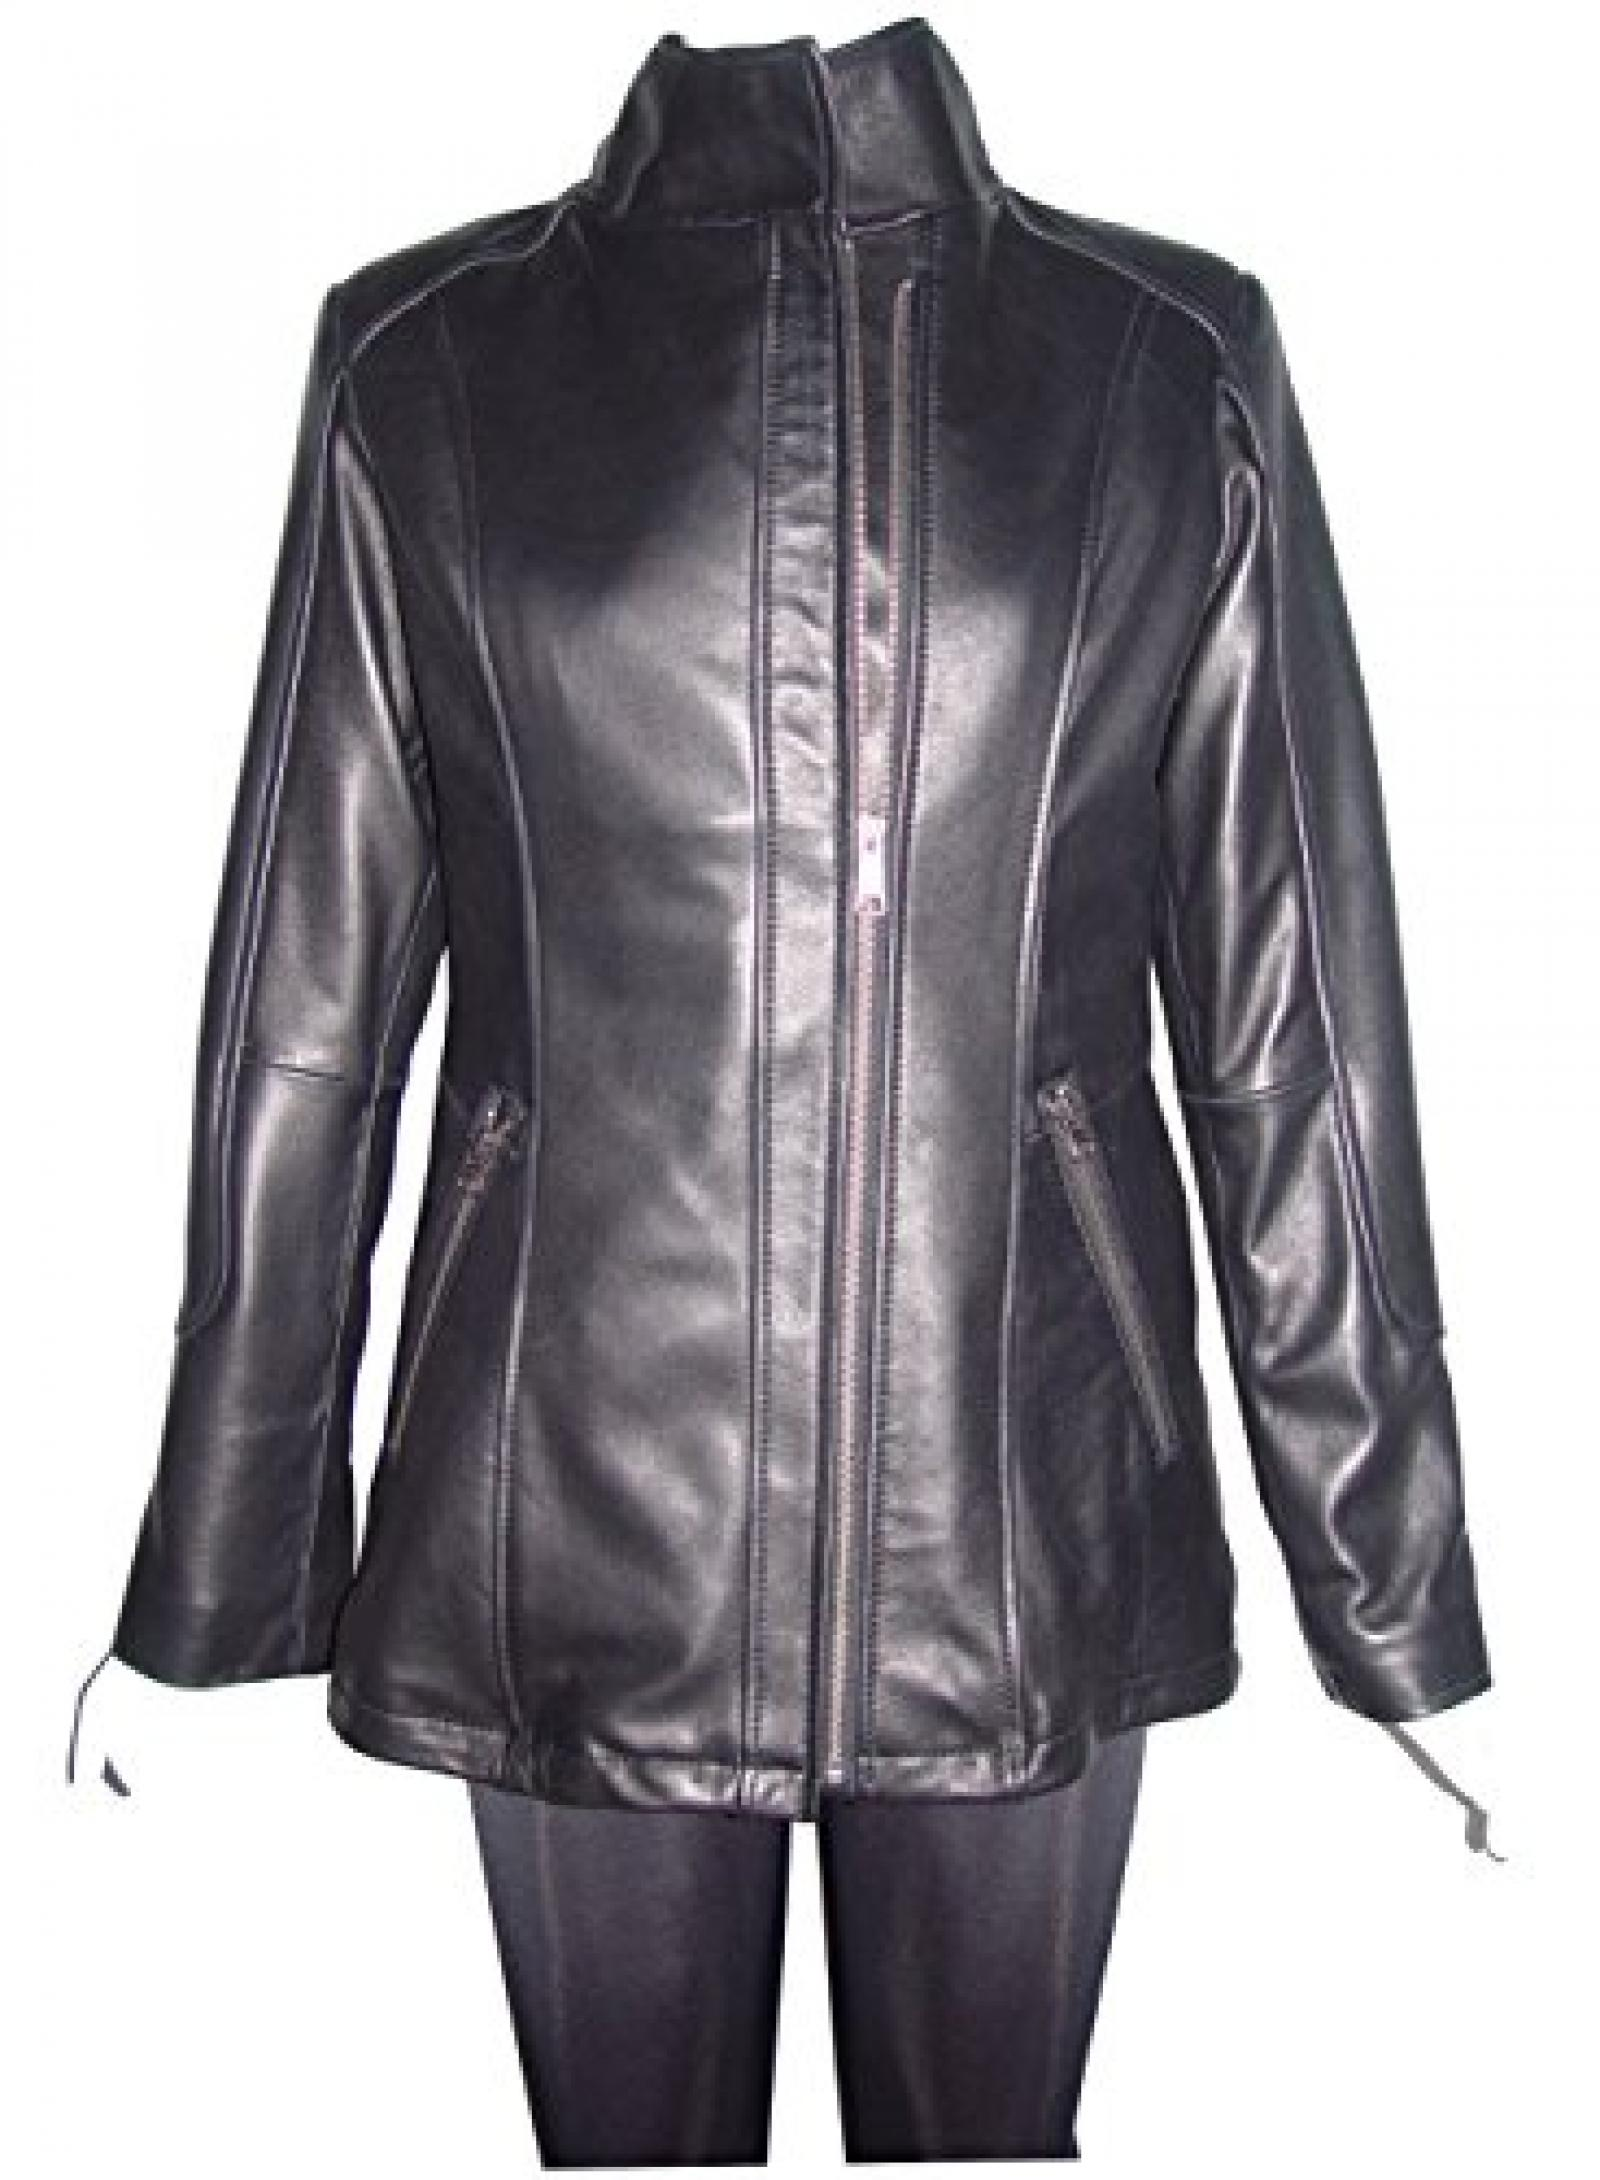 Nettailor Women PLUS SIZE 4197 Soft Leather Casual Moto Jacket Zip Front